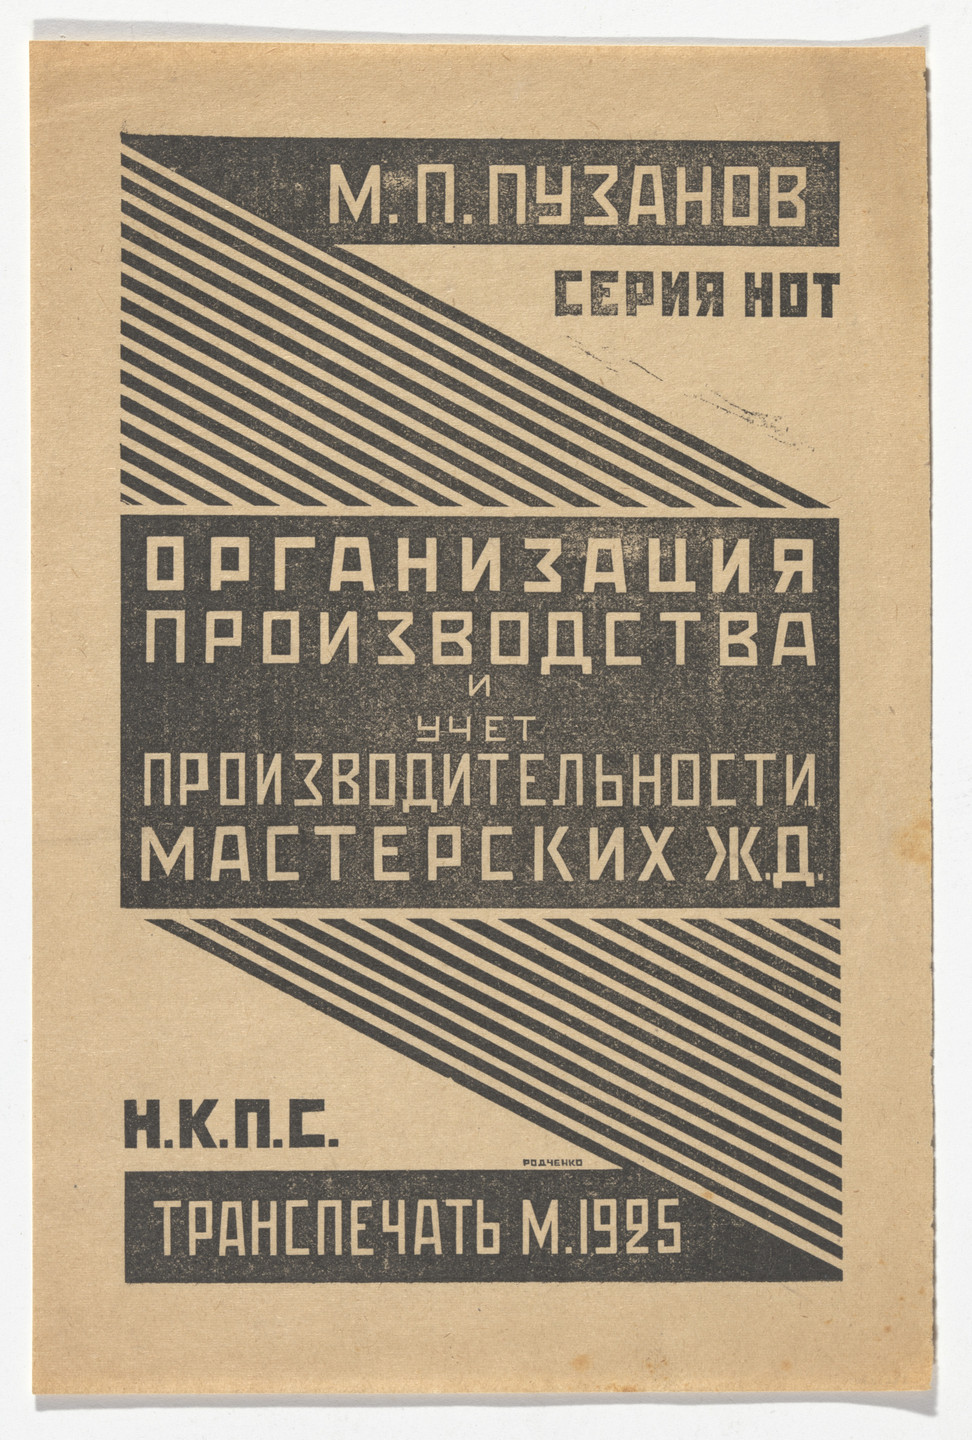 Aleksandr Rodchenko. Cover design for Organizatsiia proizvodstva i uchet proizvoditel'nosti masterskikh zh.d (Organization of Production and Inventory of Railroad Workshop Output). 1925